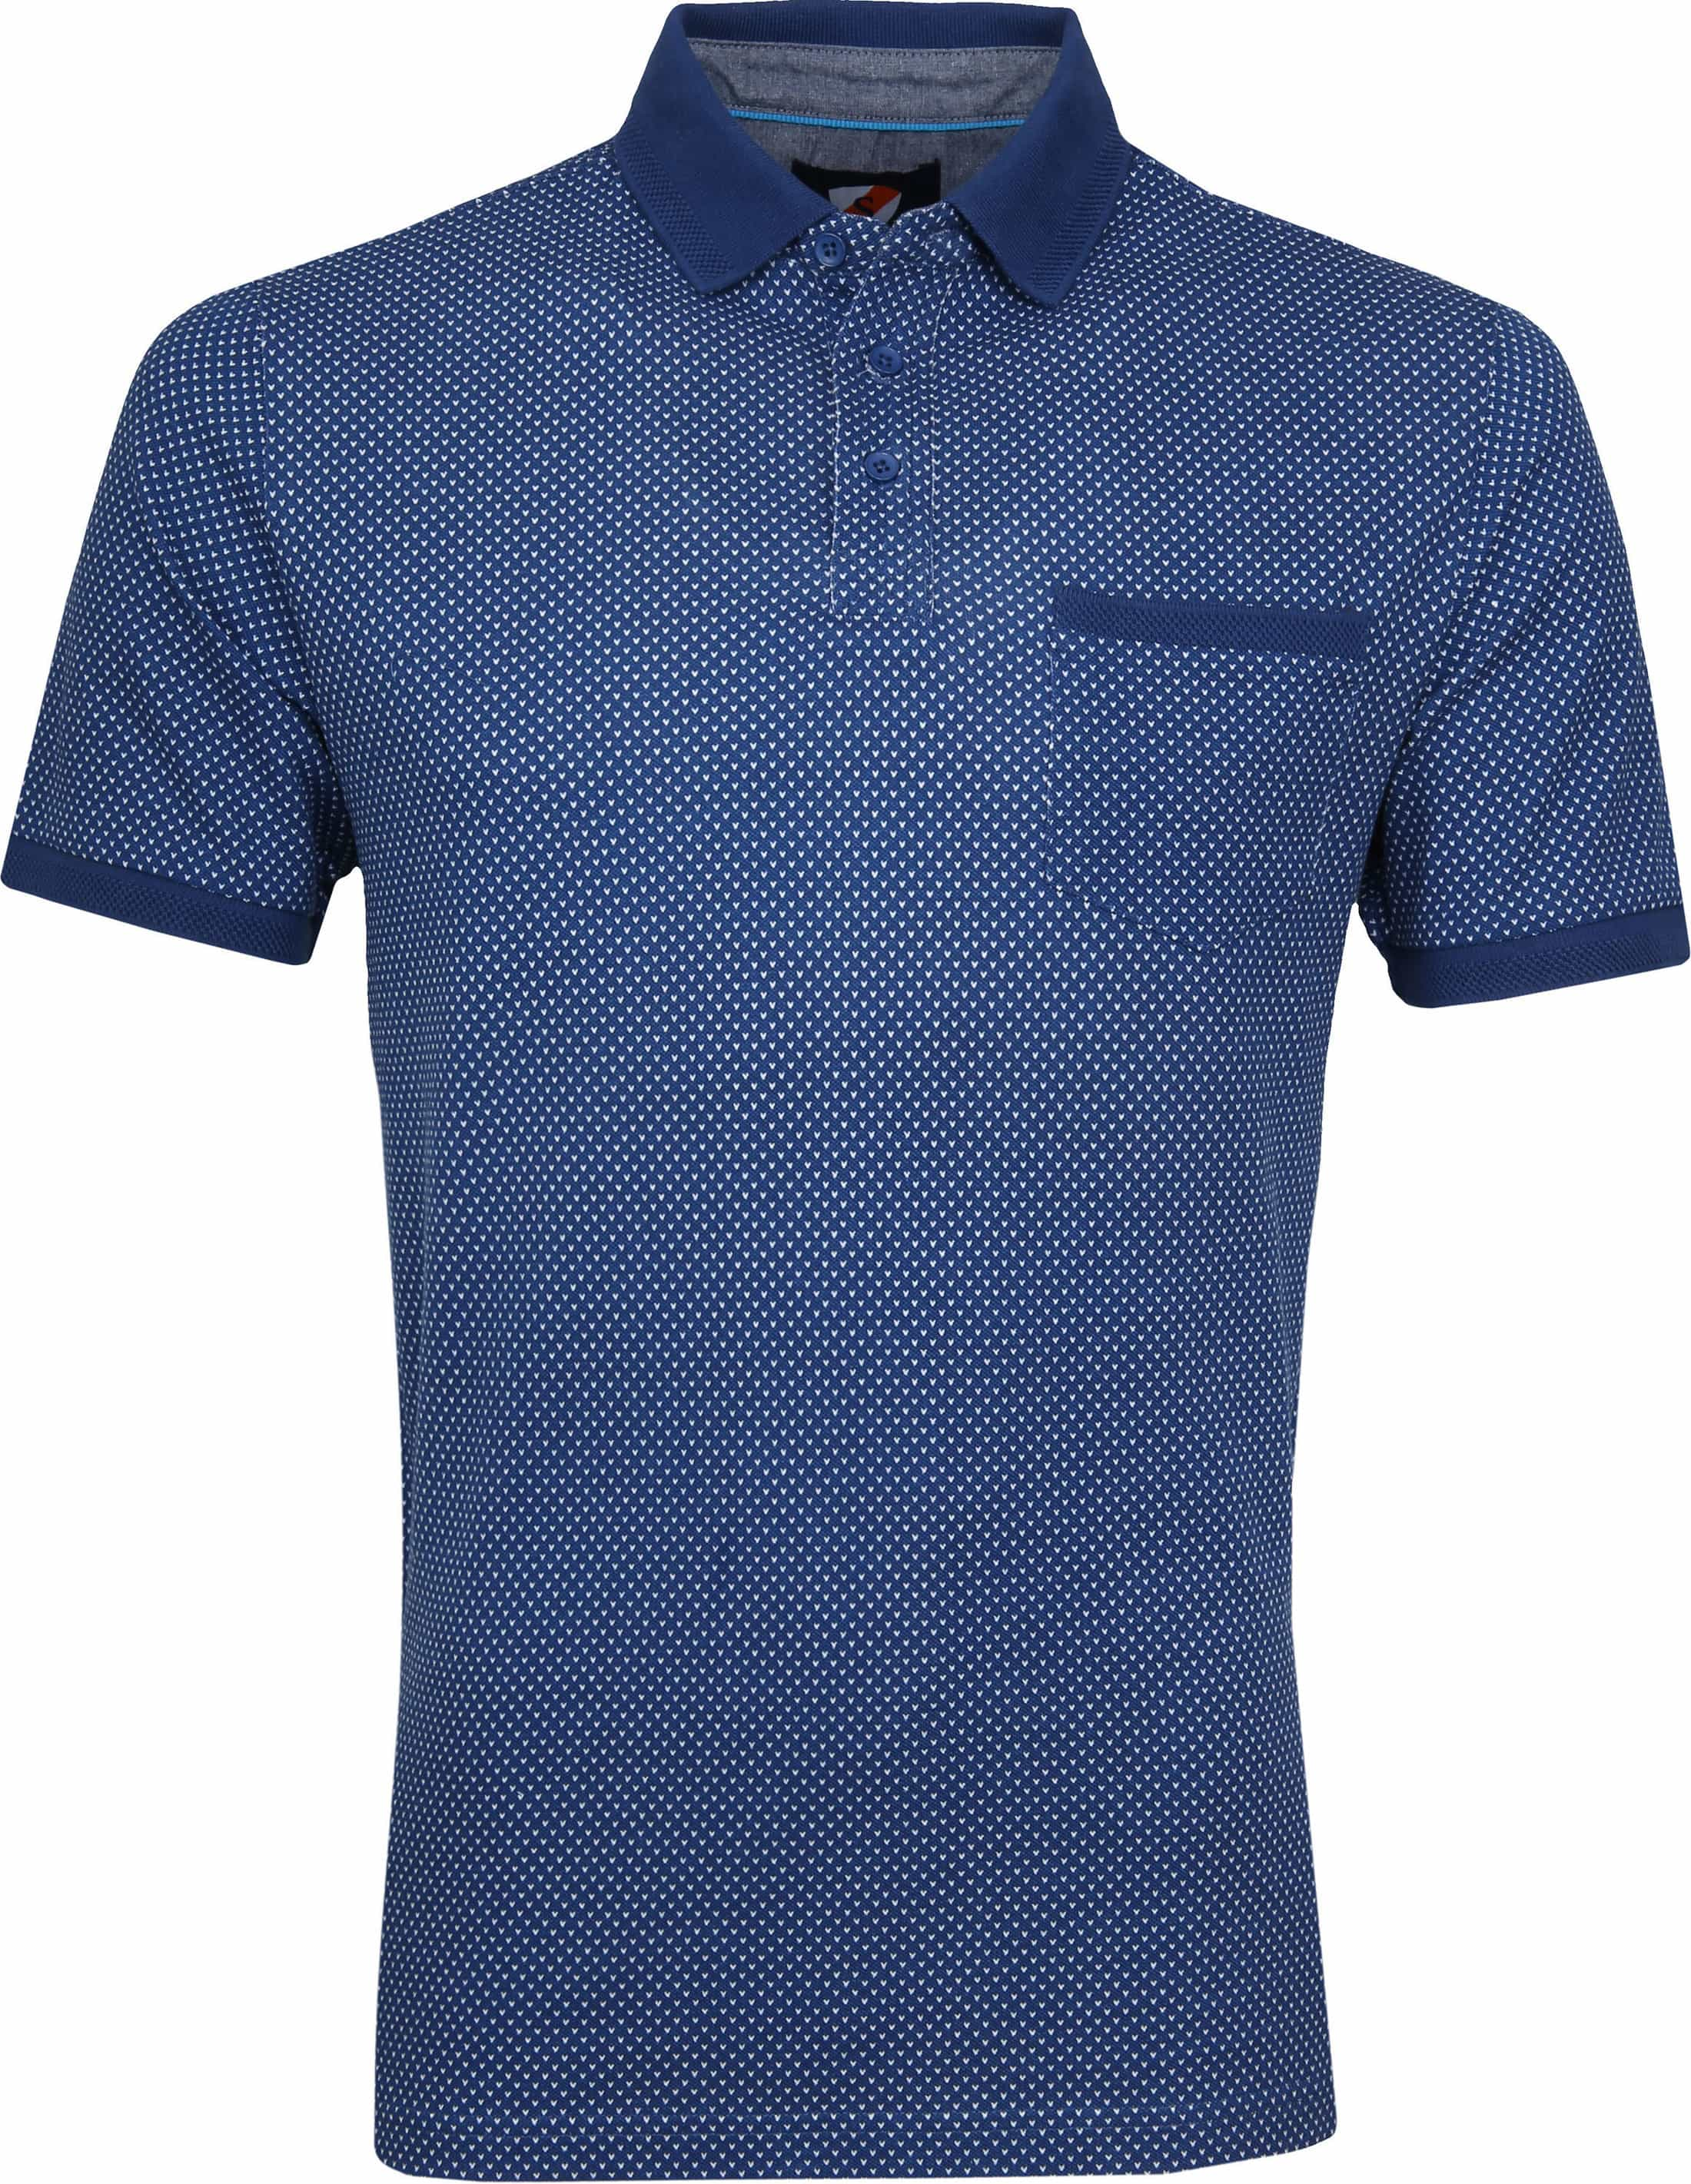 Suitable Till Polo Dessin Blauw foto 0